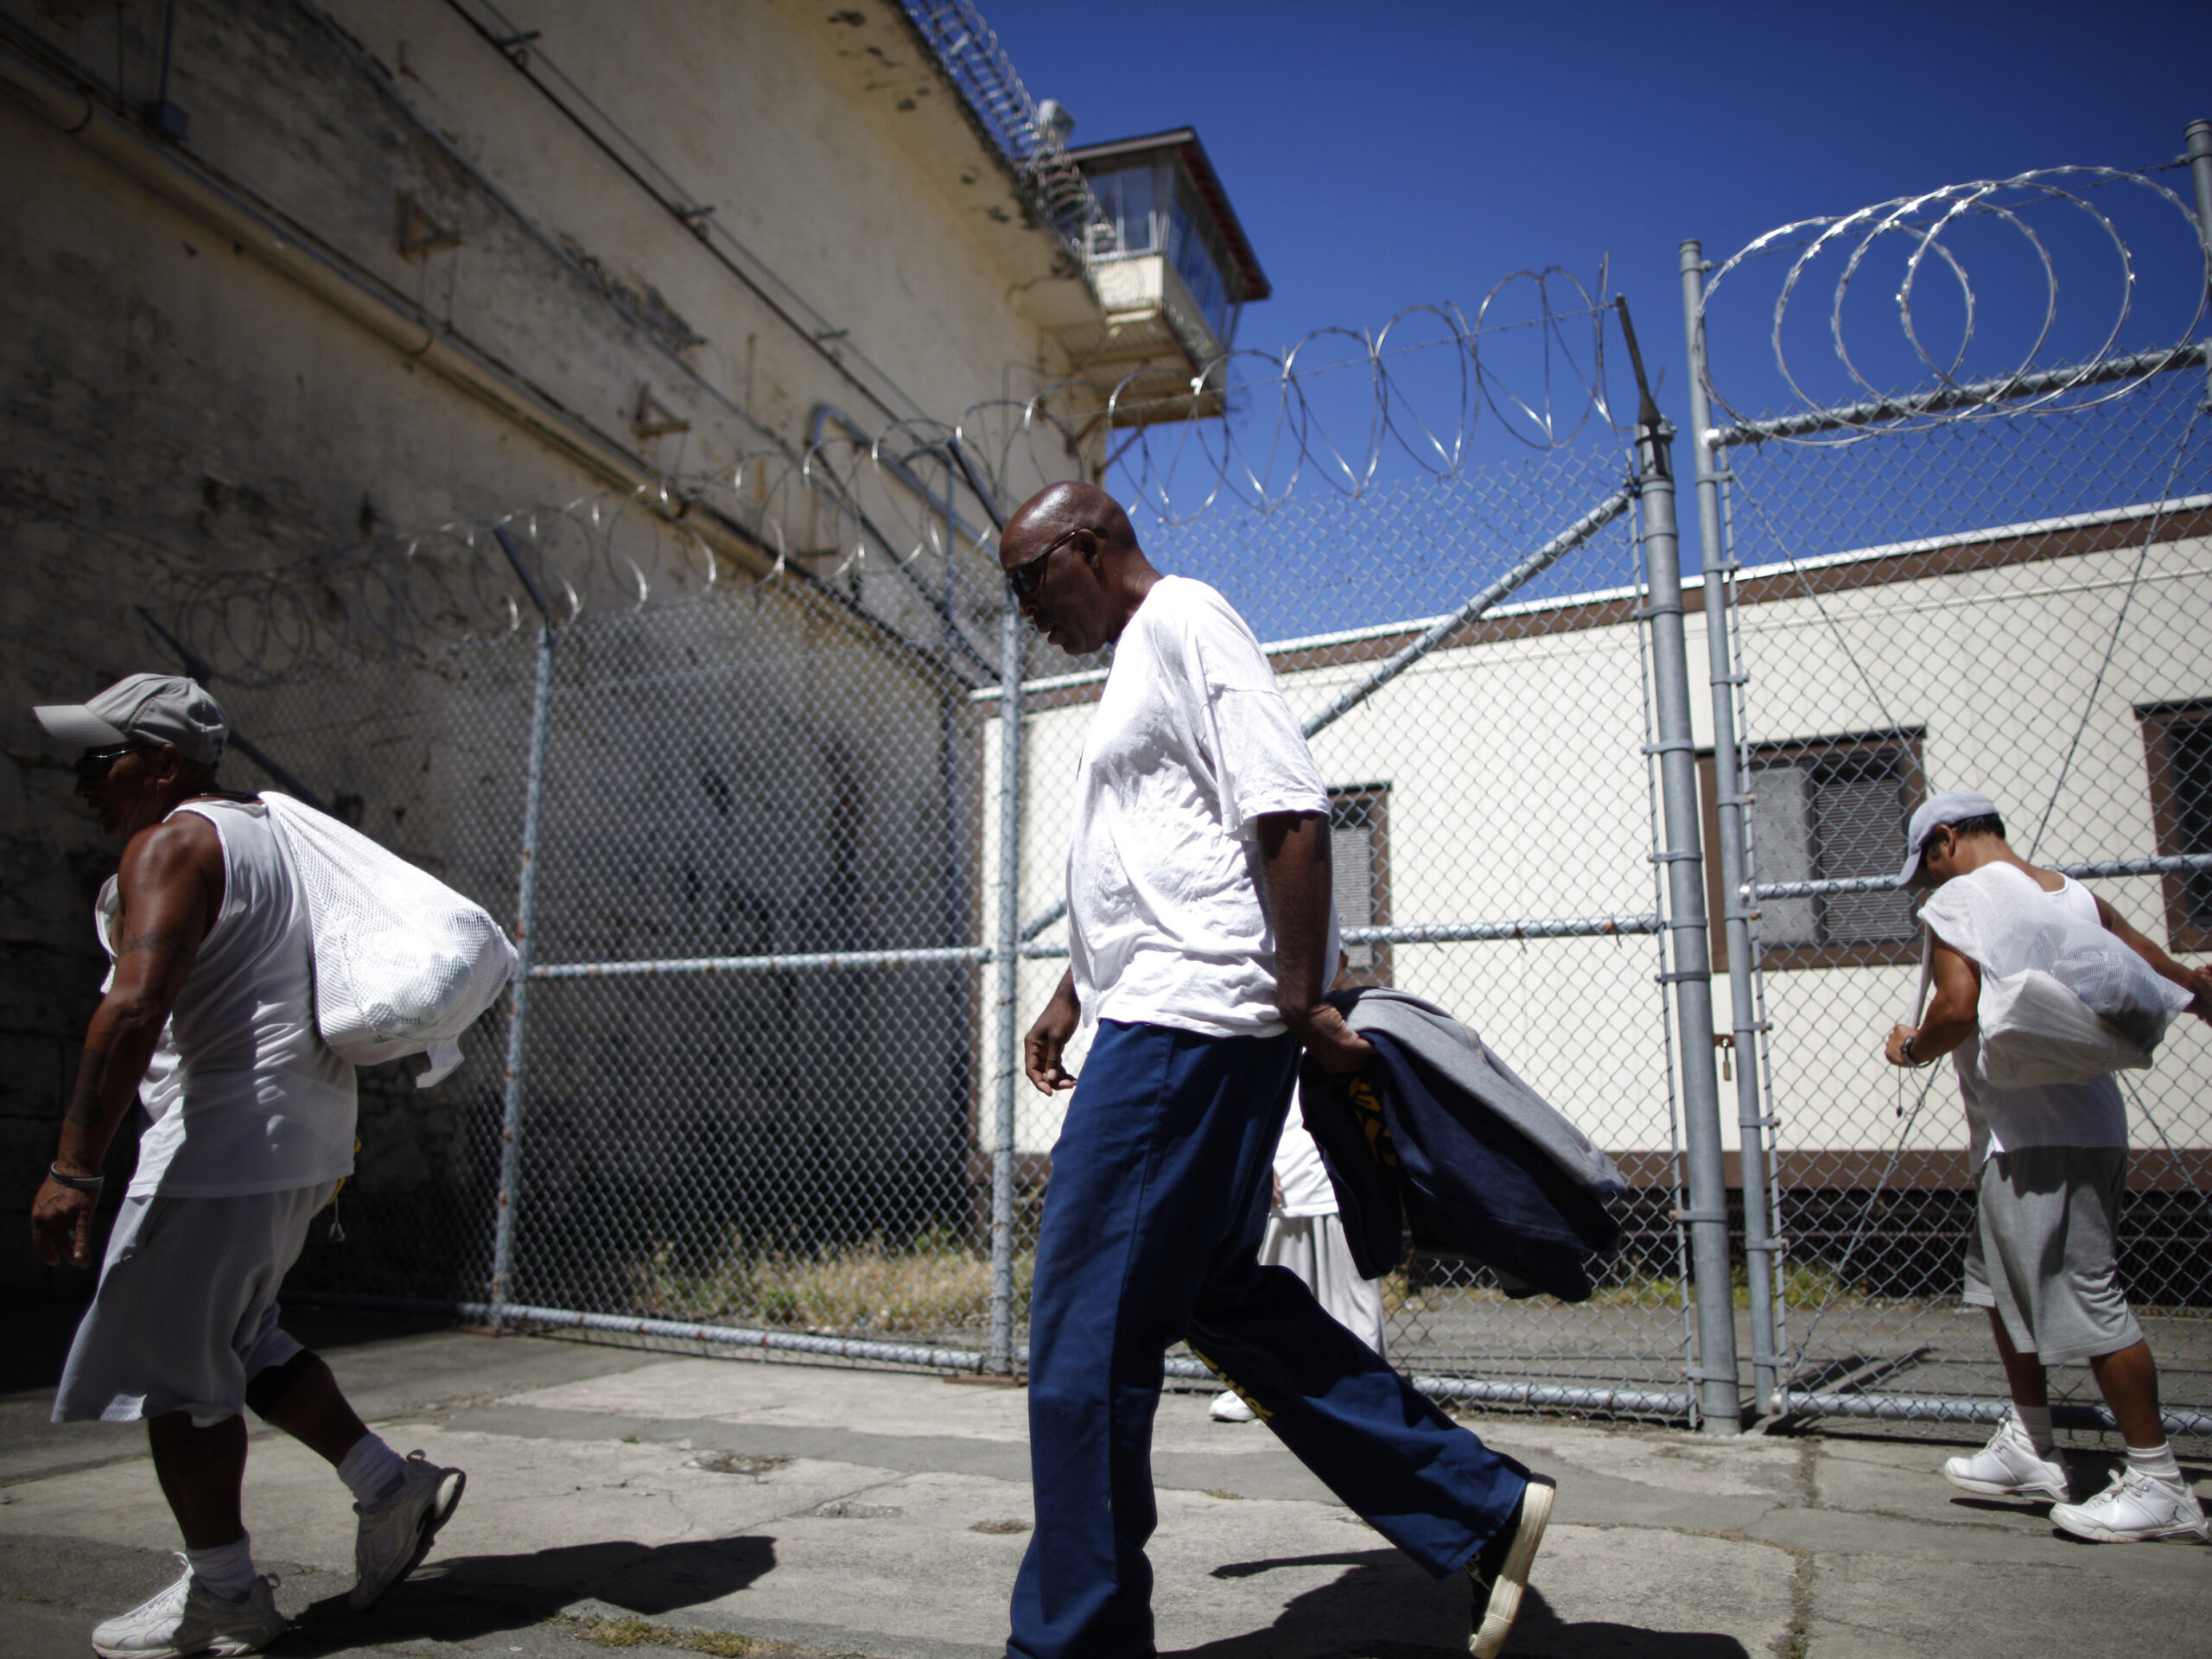 Inmates leave the exercise yard at San Quentin state prison in San Quentin, California June 8, 2012.  REUTERS/Lucy Nicholson (UNITED STATES - Tags: CRIME LAW SOCIETY) - RTR33L81